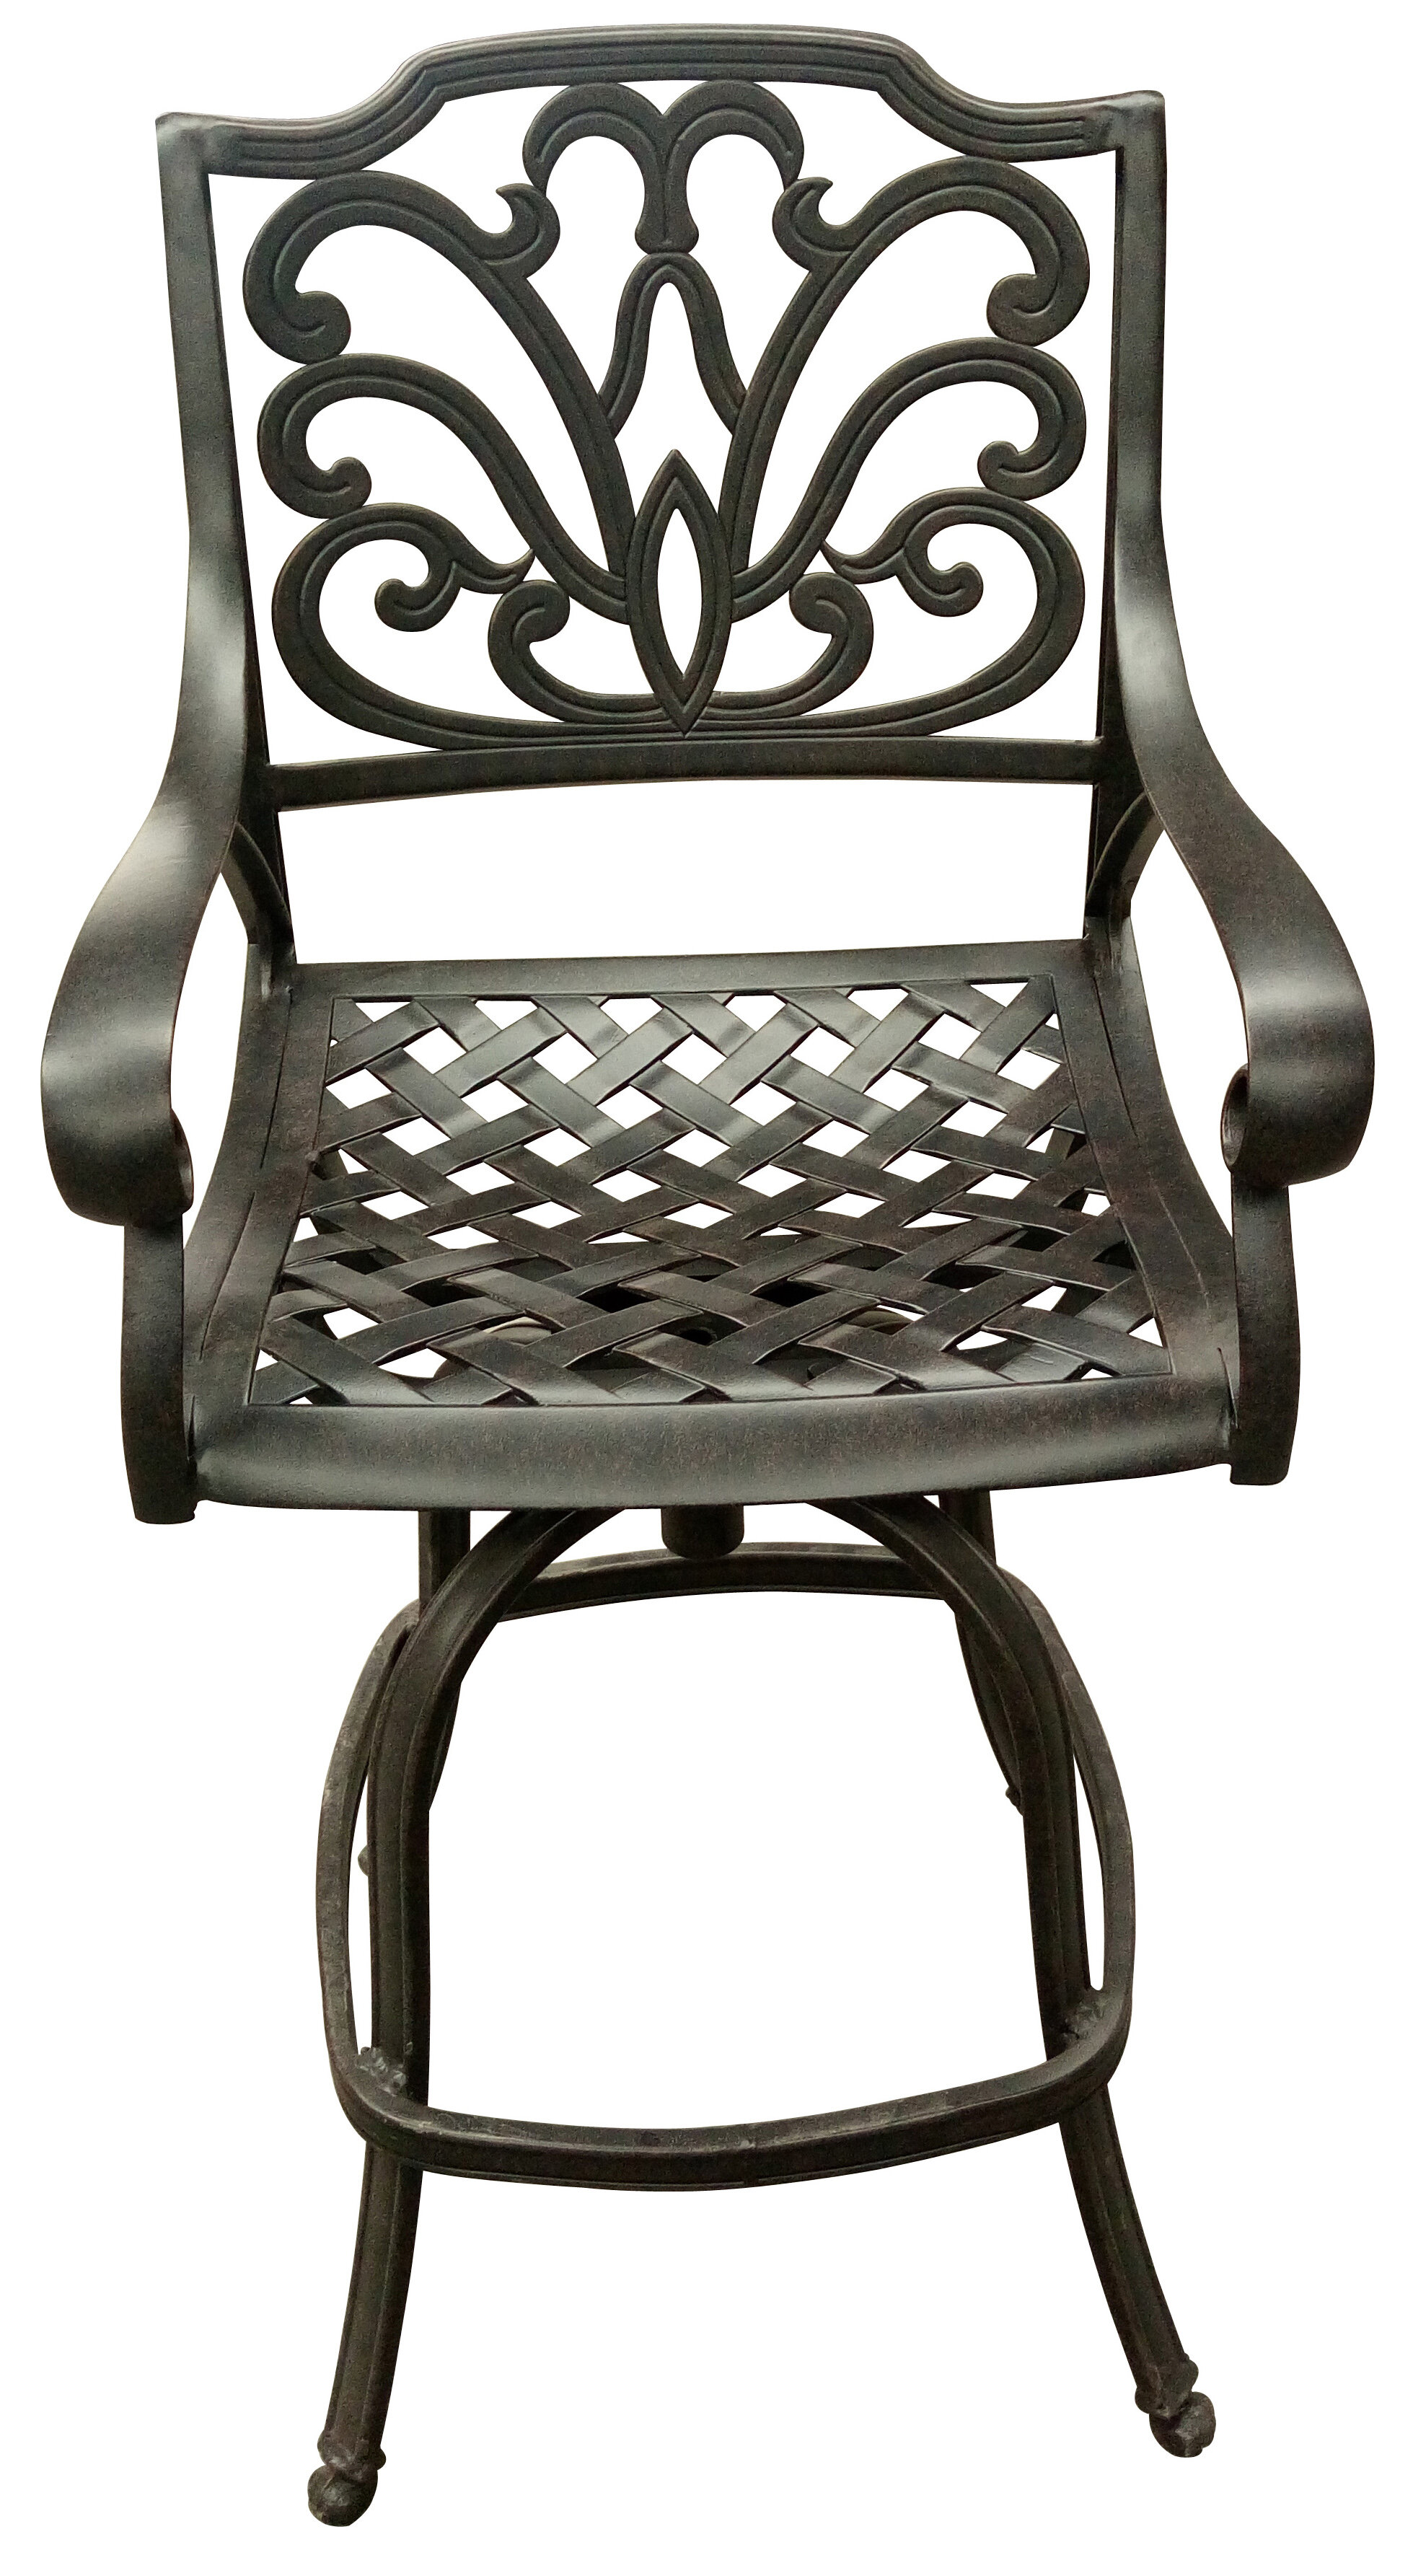 Fantastic Brownridge Outdoor Cast Aluminum 29 5 Patio Bar Stools Set Of 4 Spiritservingveterans Wood Chair Design Ideas Spiritservingveteransorg